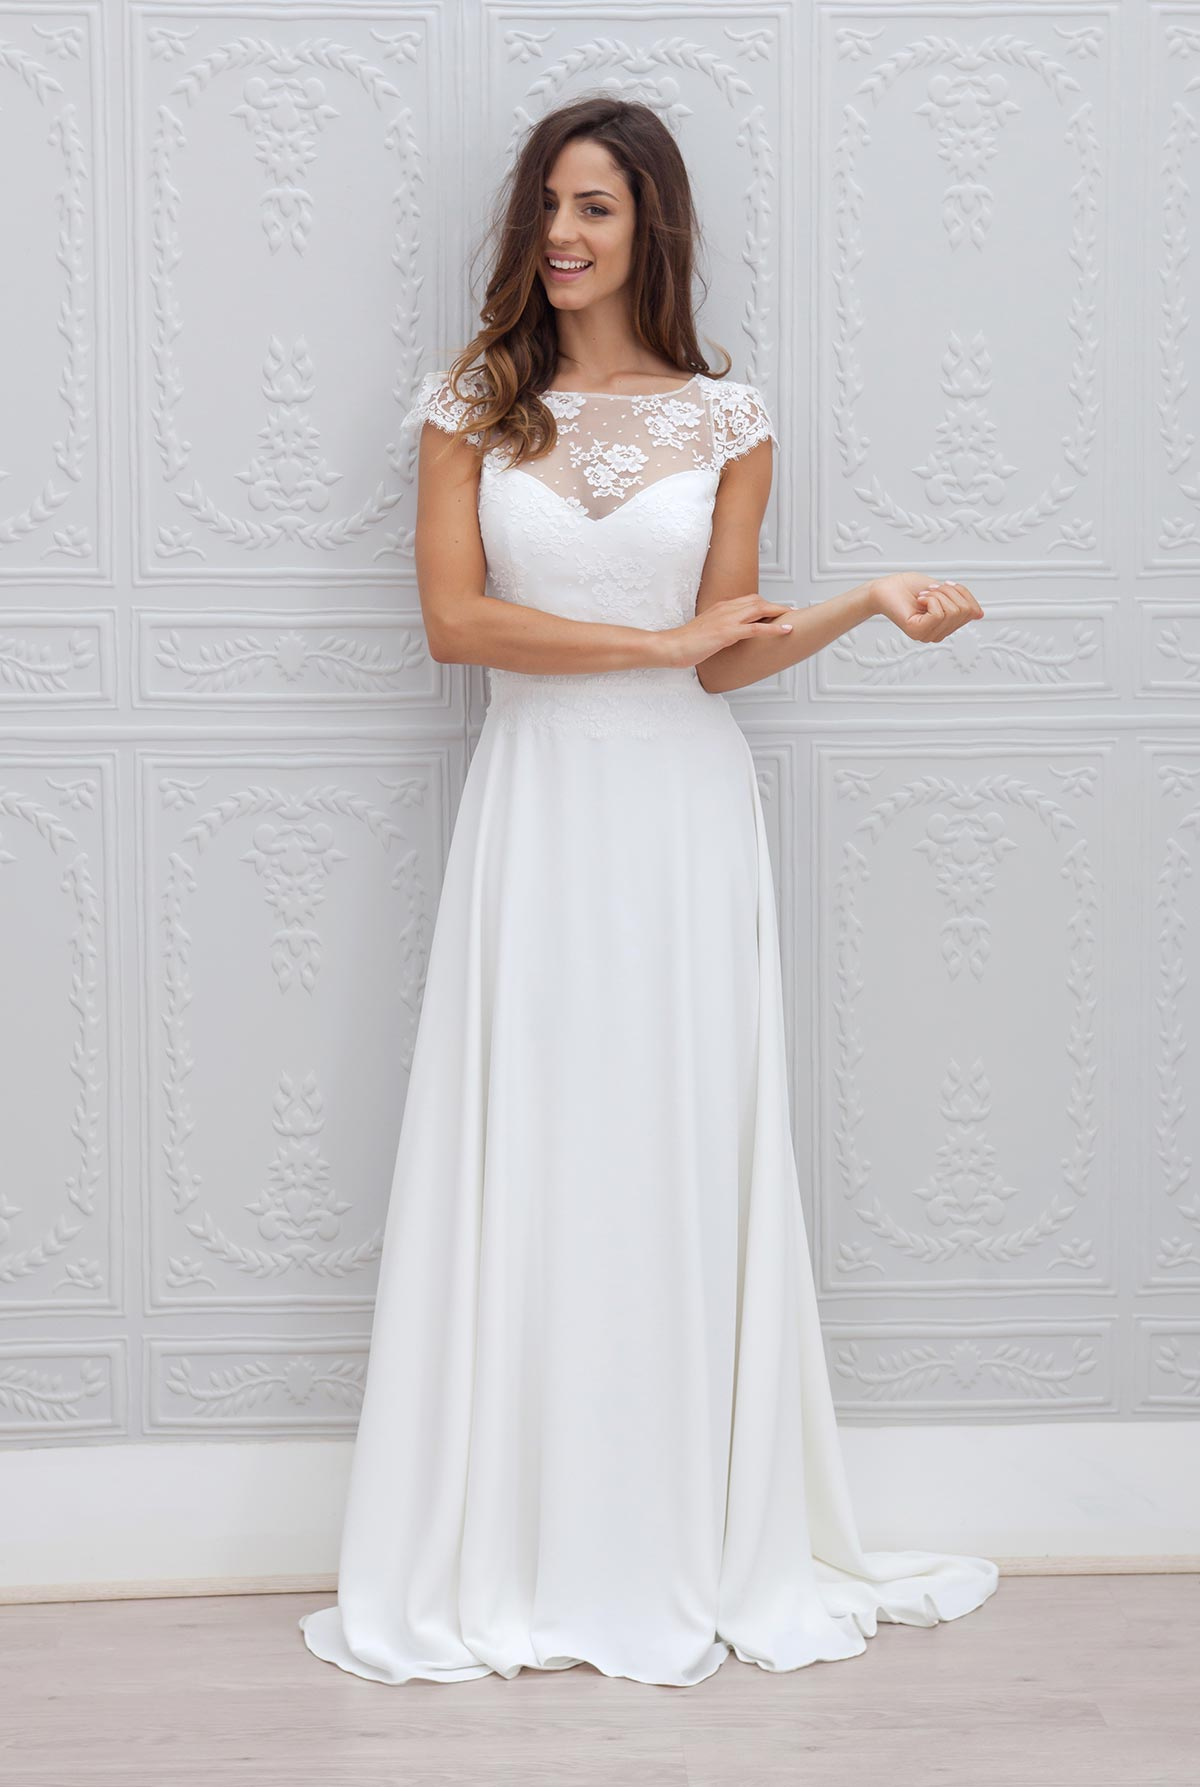 robe de mari e c cilia par marie laporte collection 2015